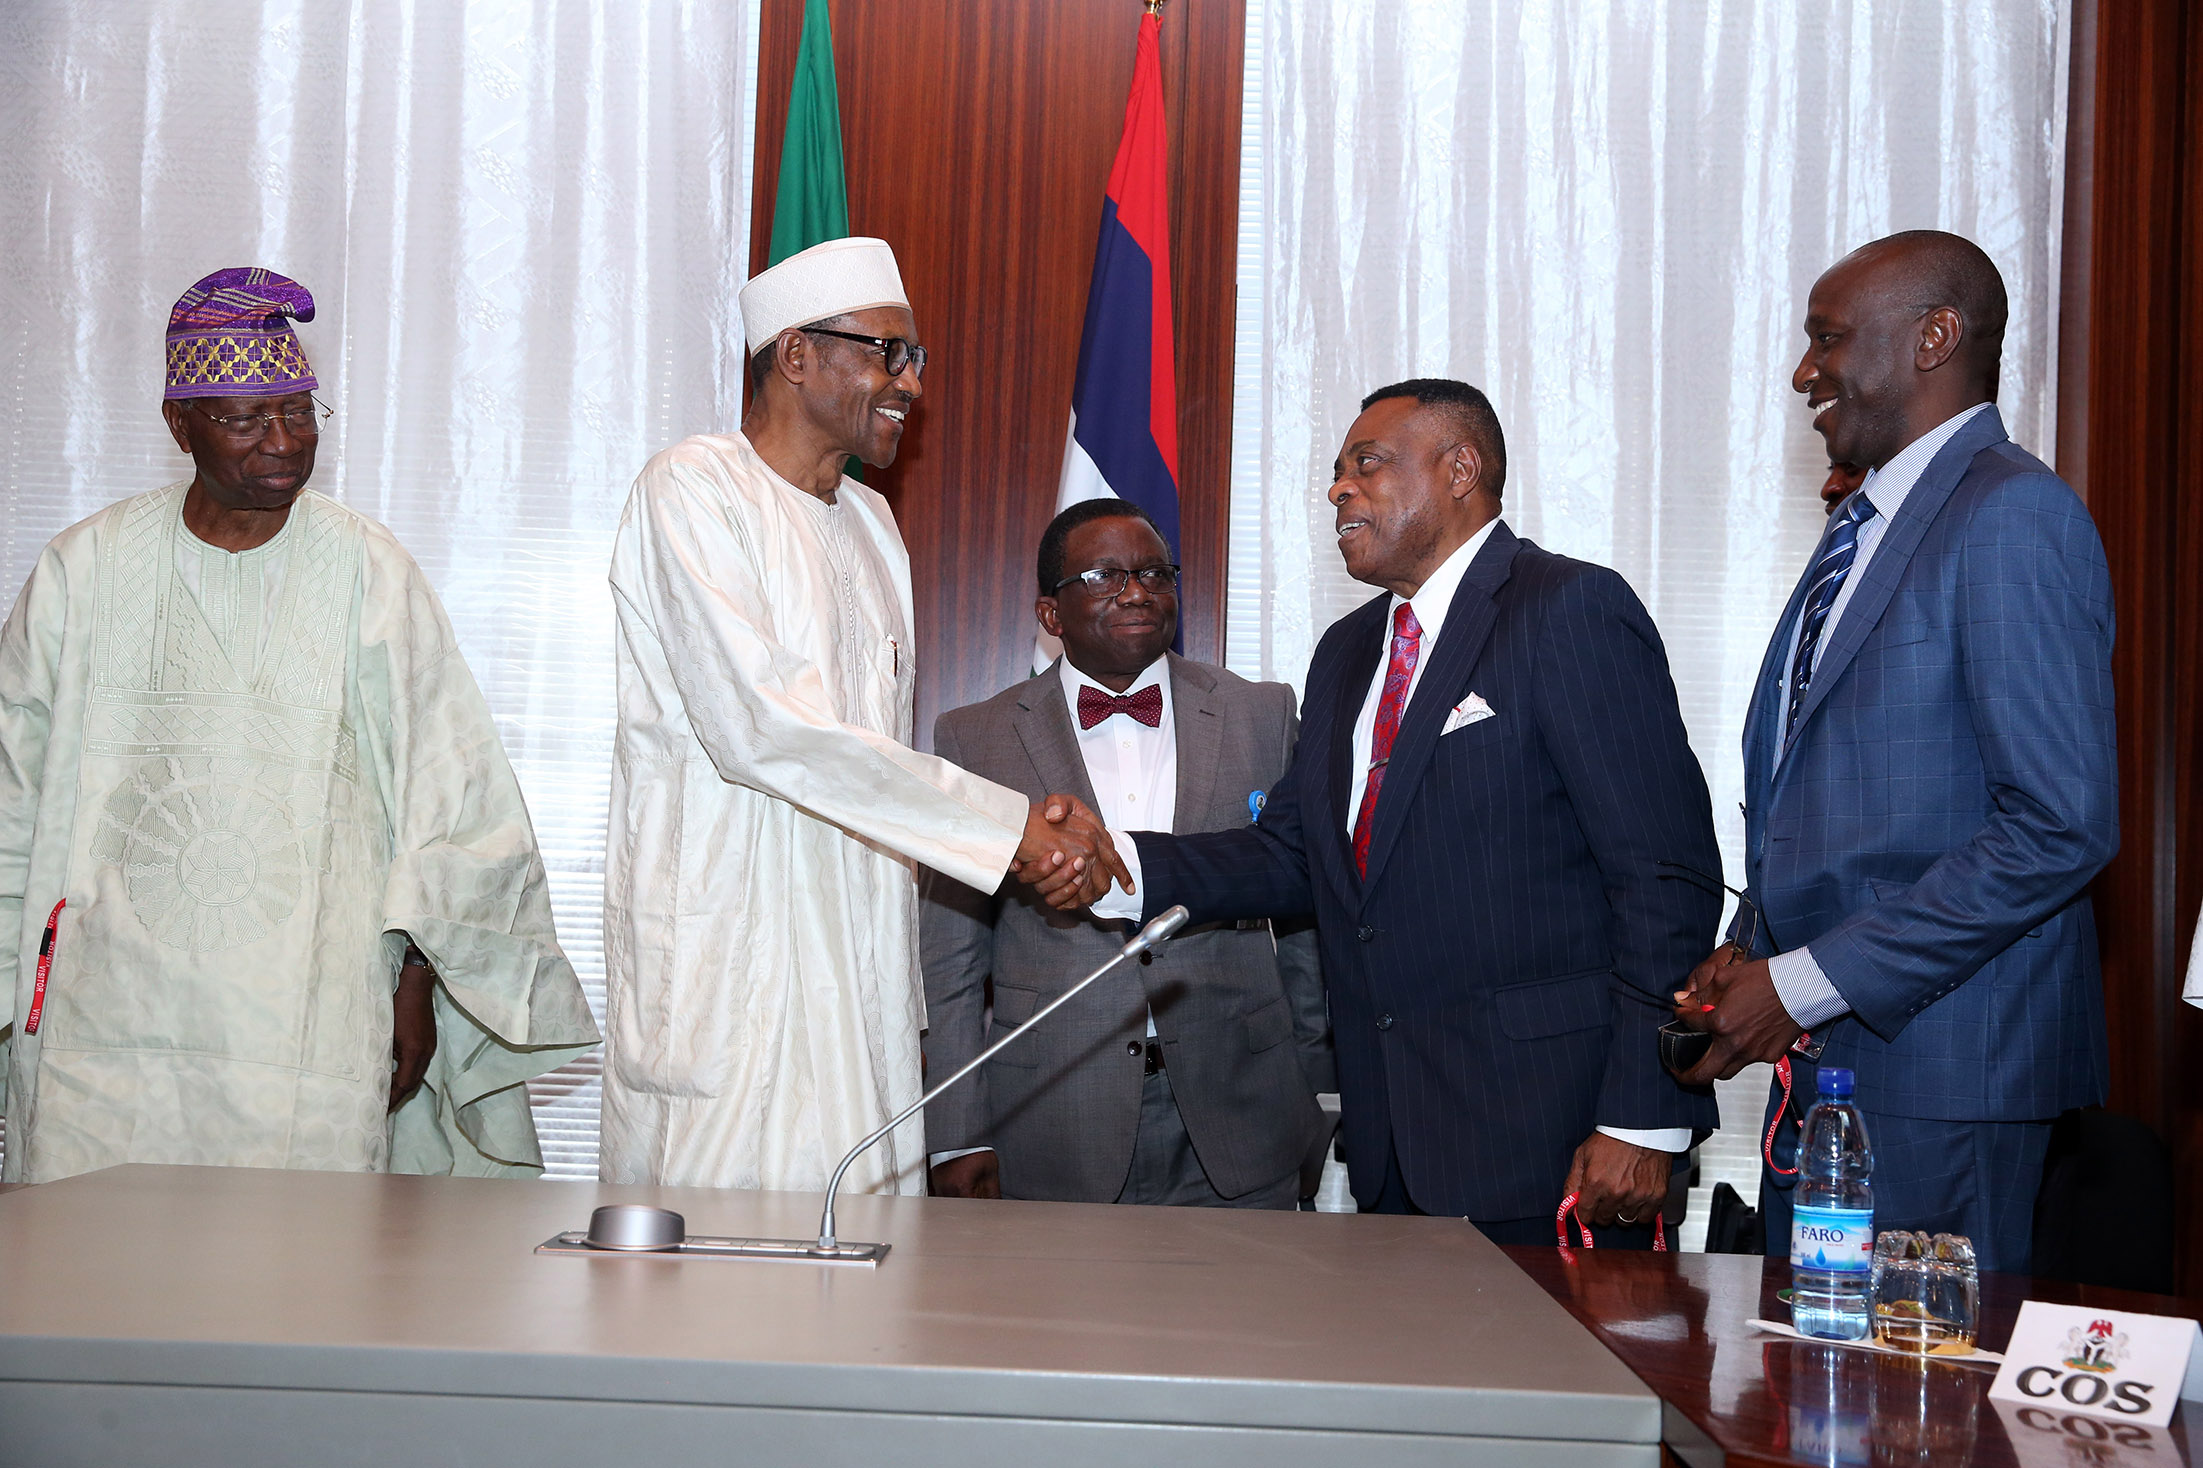 PRESIDENT BUHARI RECEIVED OBASANJO PRESIDENTIAL LIB TEAM. 5. L-R; Leader of the Team, Professor O. O. Akinkugbe, President Muhammadu Buhari, Minister of Health Prof Isaac Adewole, Prof Nimi Briggs and Prof Noel Wannang during a meeting with Team of Eminent Nigerians from Olusegun Obasanjo's President Library as they present health reports from health sector to the President at the State House in Abuja. PHOTO; SUNDAY AGHAEZE/STATE HOUSE PHOTO. MARCH 1 2016